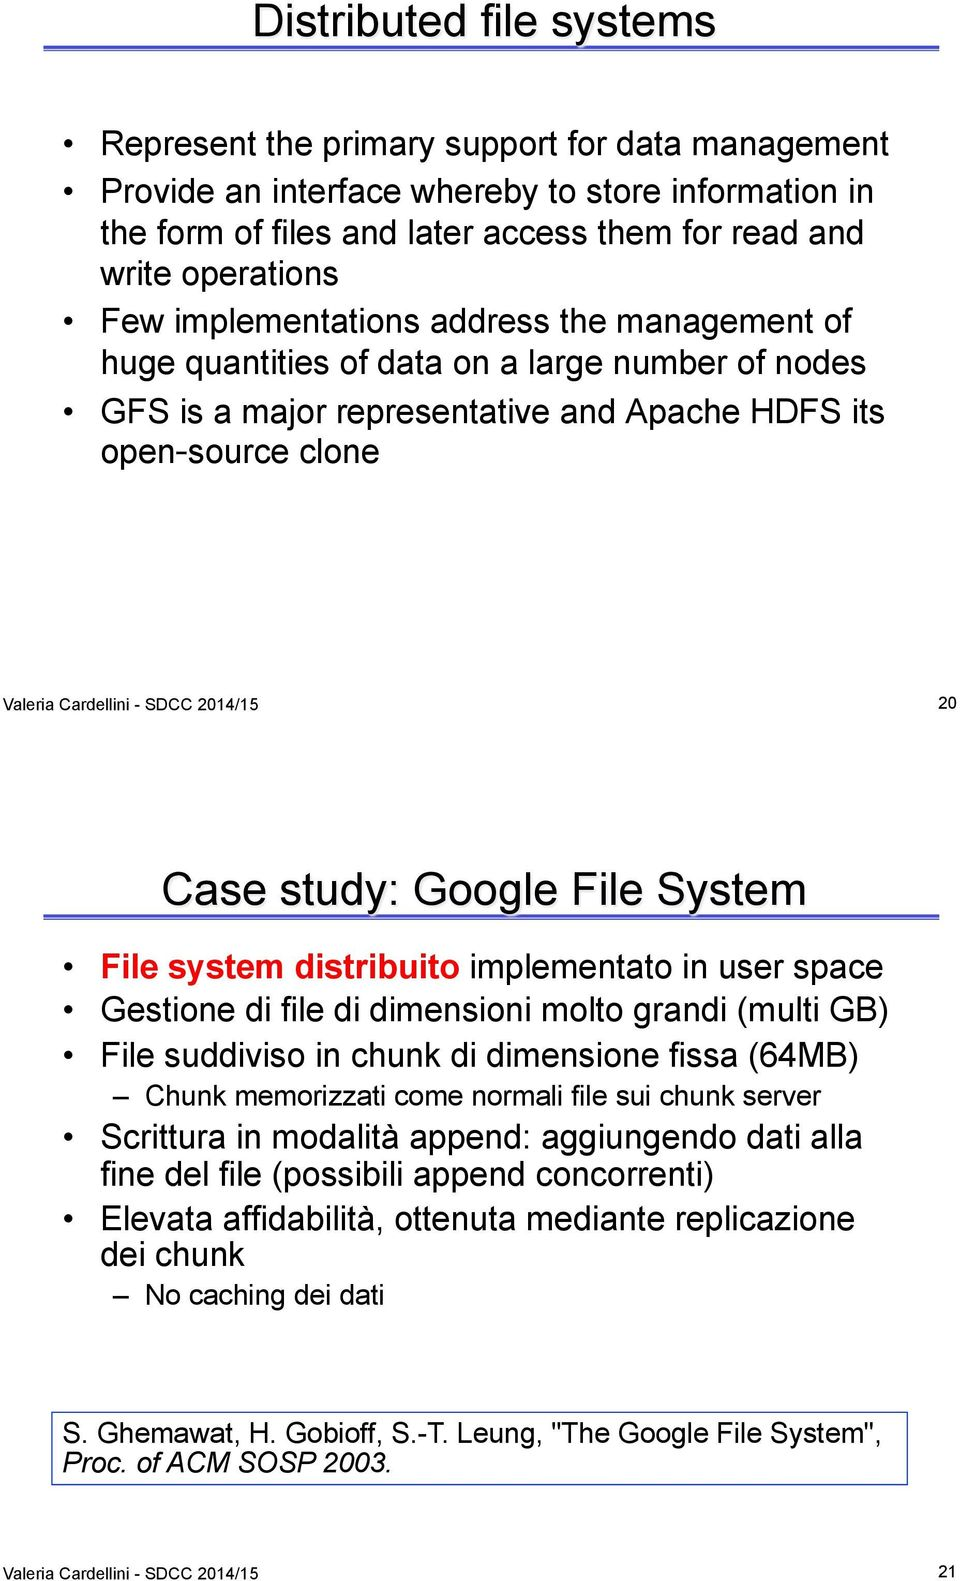 20 Case study: Google File System File system distribuito implementato in user space Gestione di file di dimensioni molto grandi (multi GB) File suddiviso in chunk di dimensione fissa (64MB) Chunk